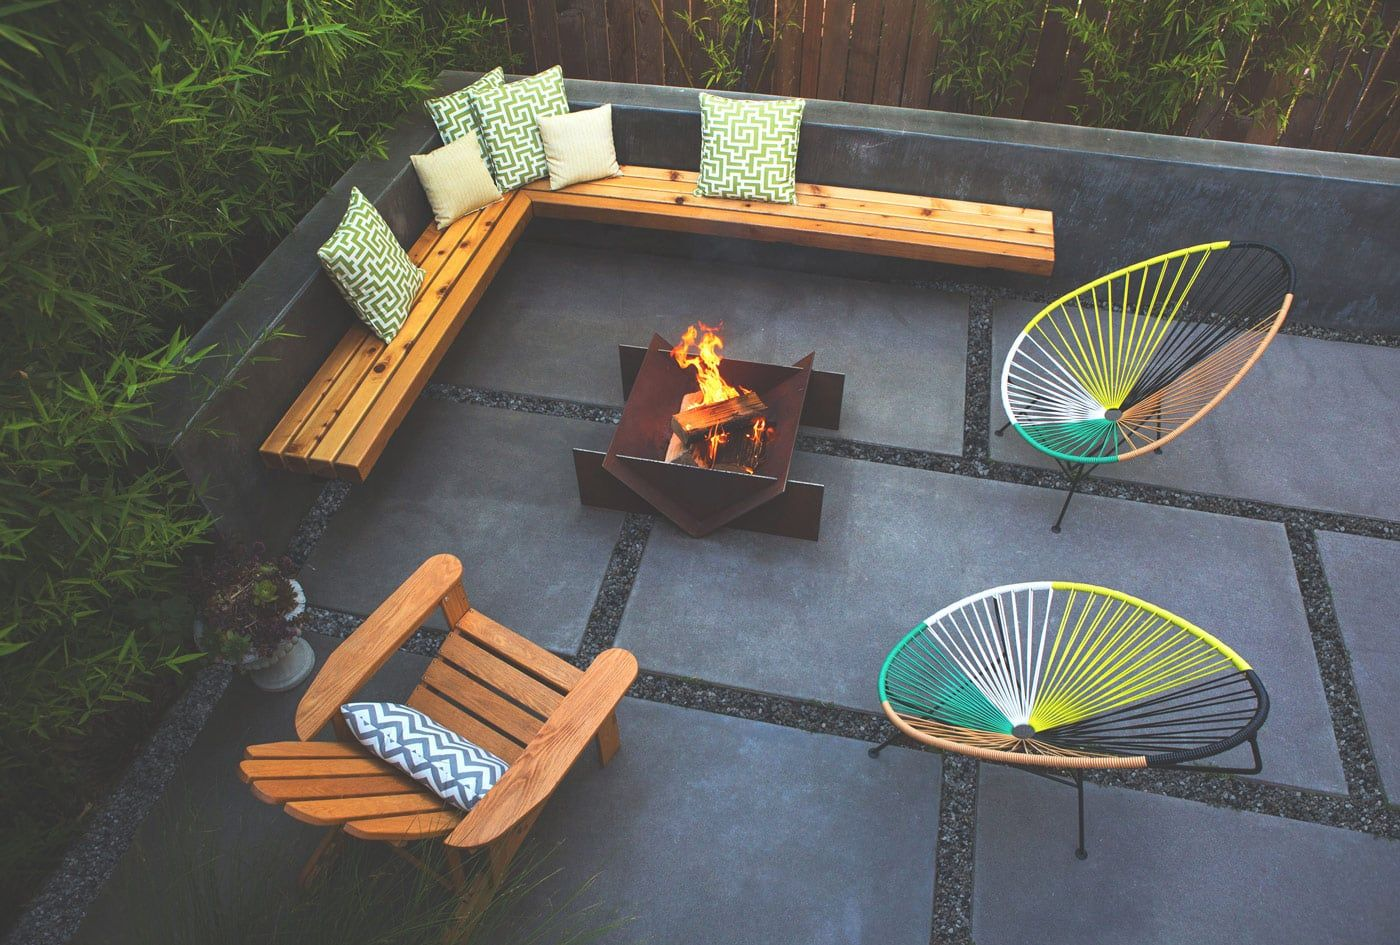 backyard fire pit chairs herman miller chair singapore bamboo concrete firepit acapulco outdoor